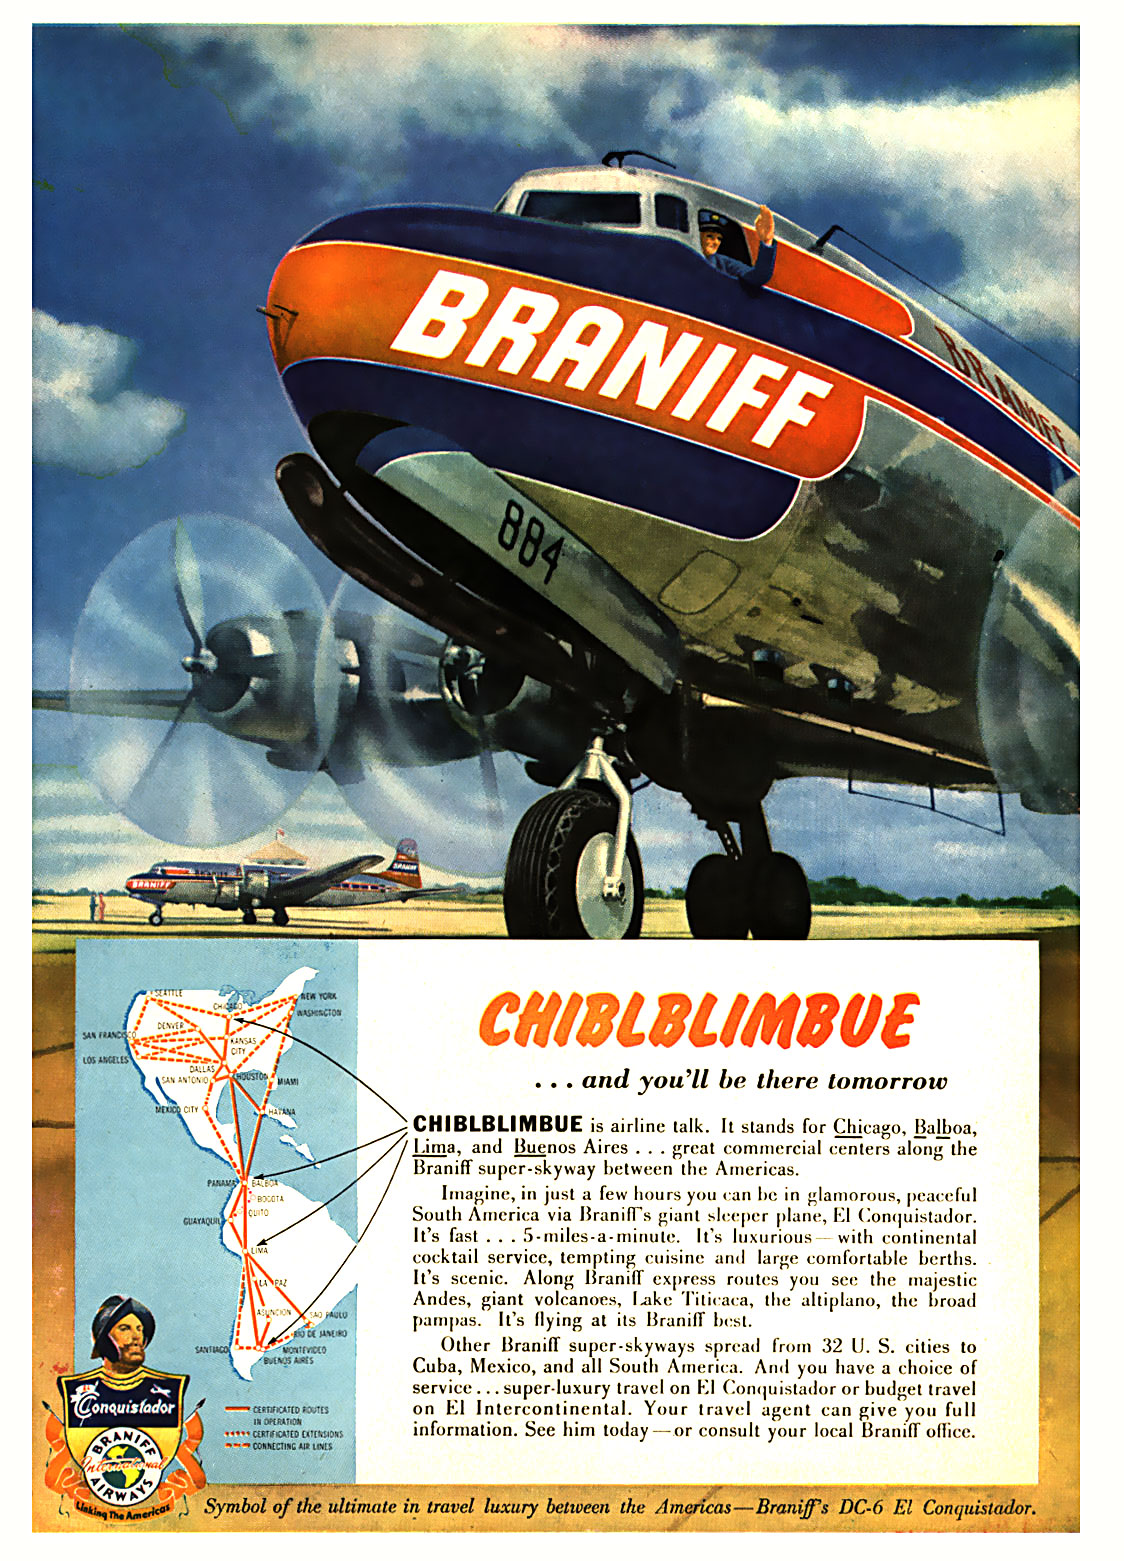 Braniff Airlines - 1950